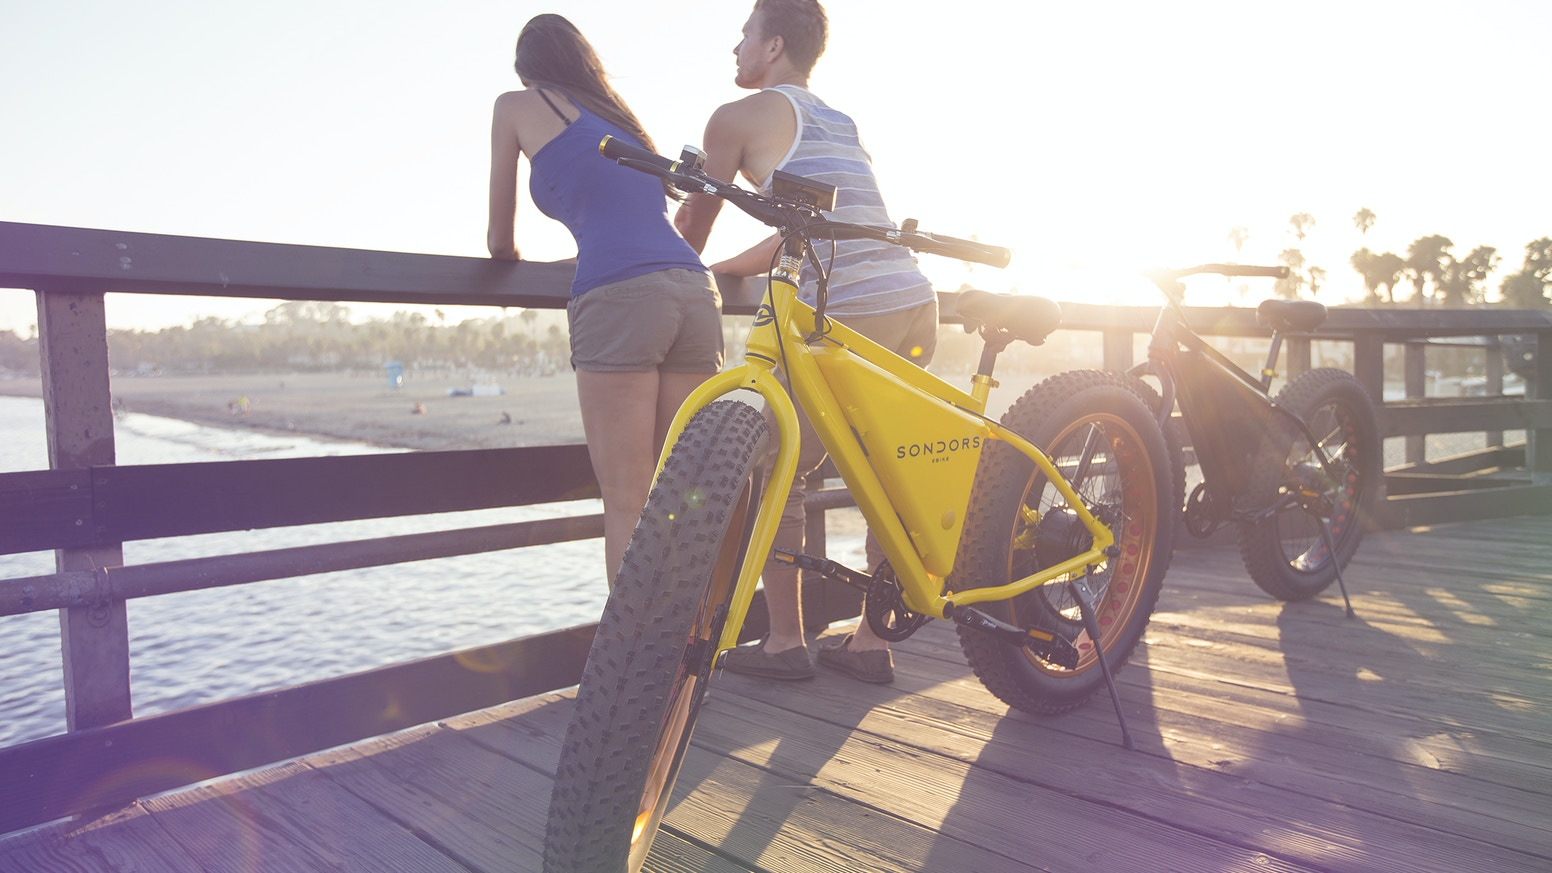 Today, SONDORS carries five Premium Electric Bike models, and contributes its continued success to the support and backing of nearly 30,000 loyal SONDORS owners worldwide. Come join us, and enjoy the ride!